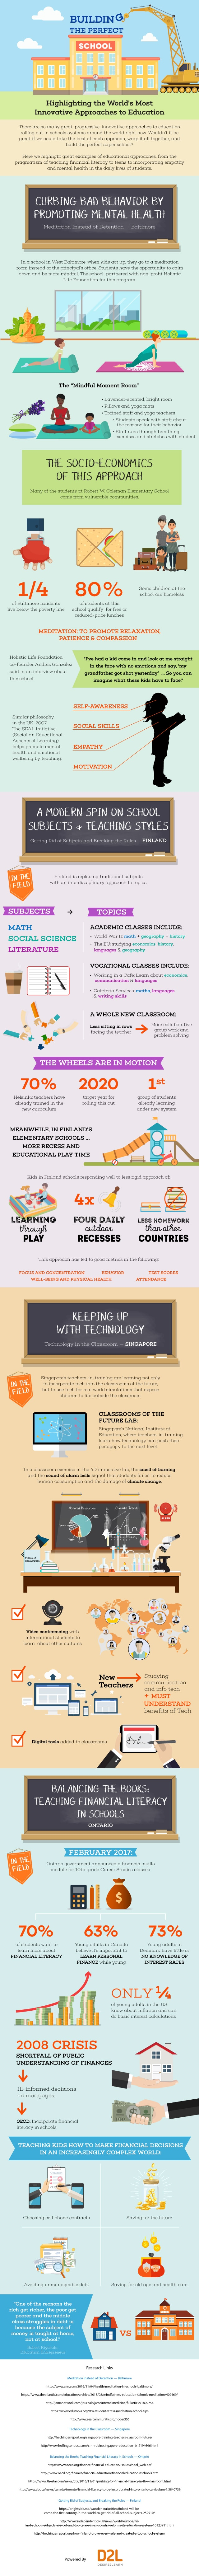 infograhpic building the perfect school-min